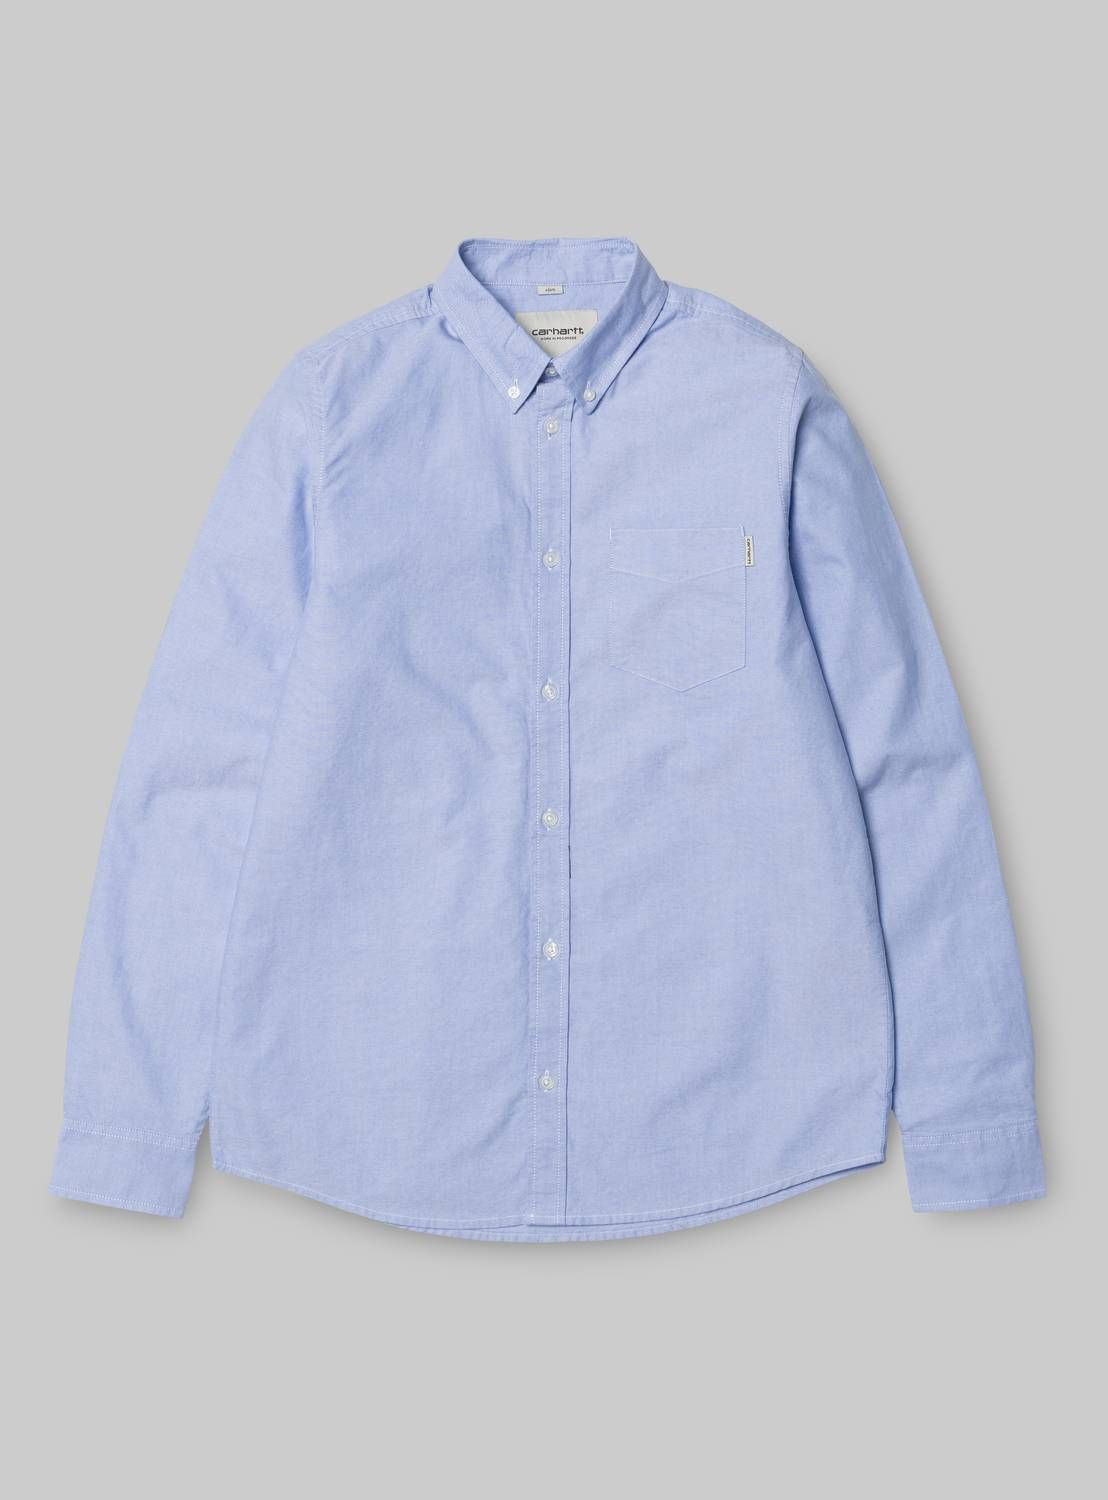 Carhartt Button Down Pocket Shirt Blue - Shirts